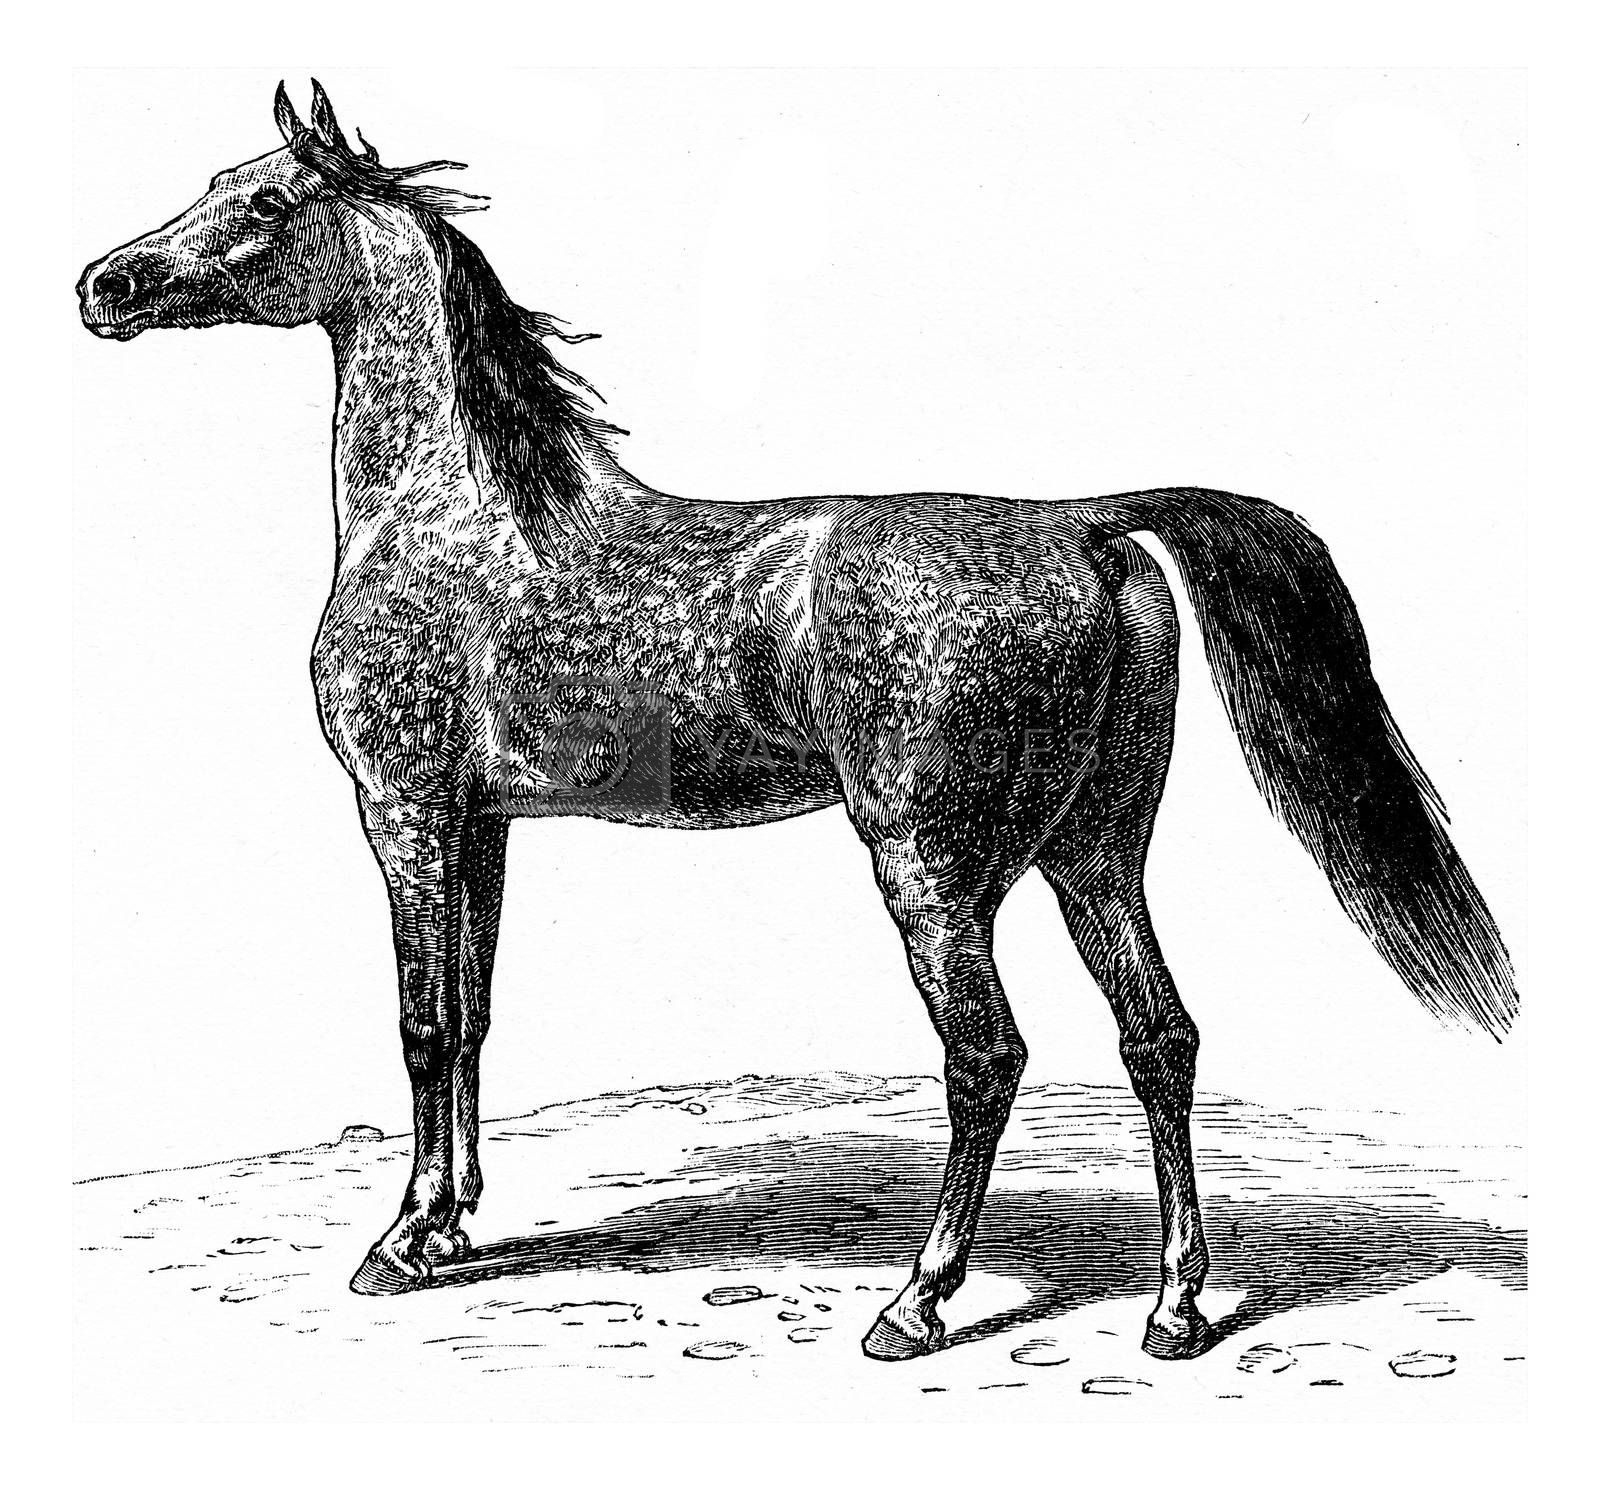 Horse, vintage engraved illustration. La Vie dans la nature, 1890.